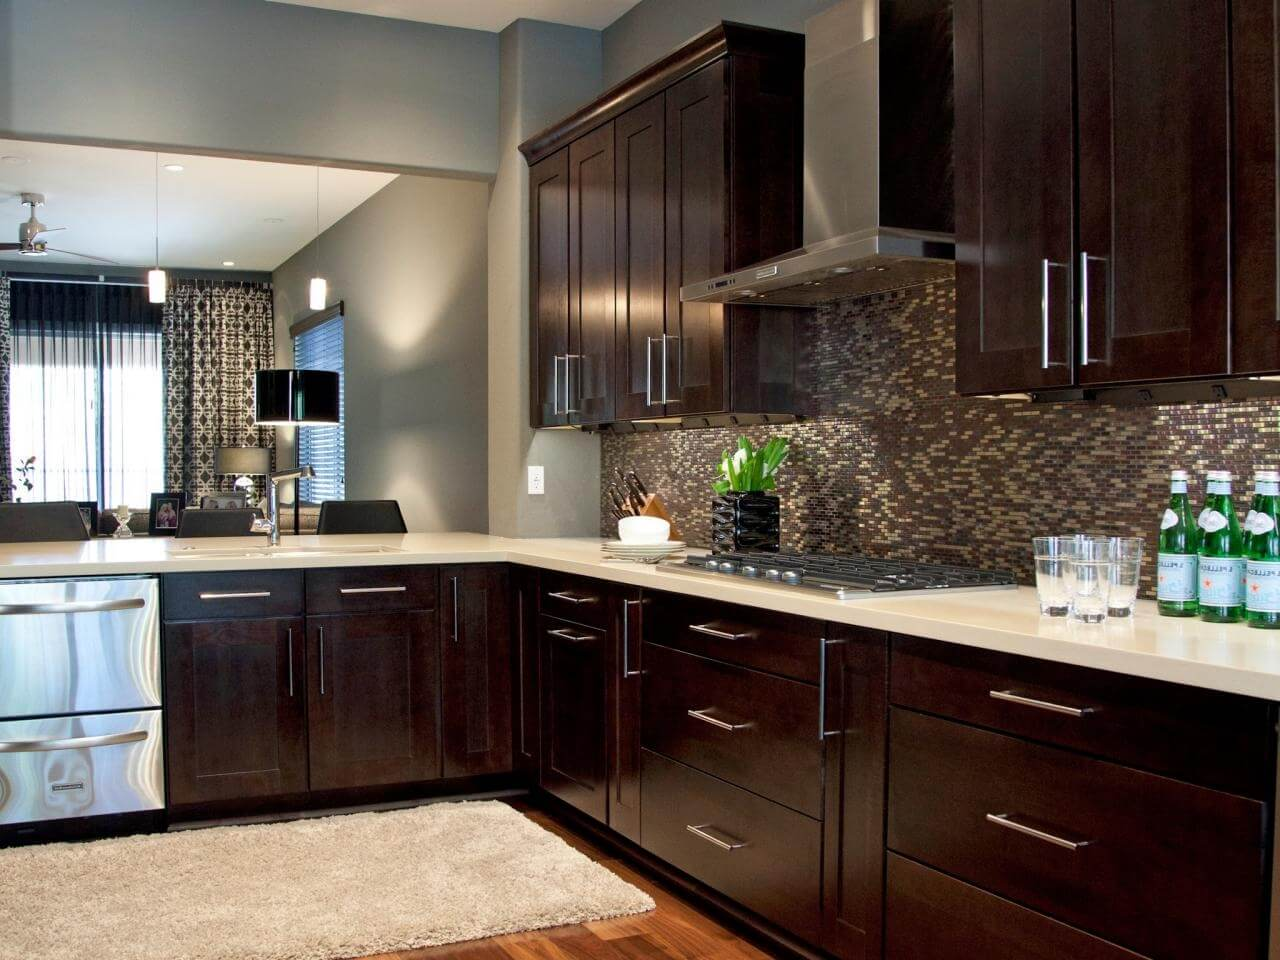 Rta kitchen cabinets why you should use them in your for Kitchen cabinets rta